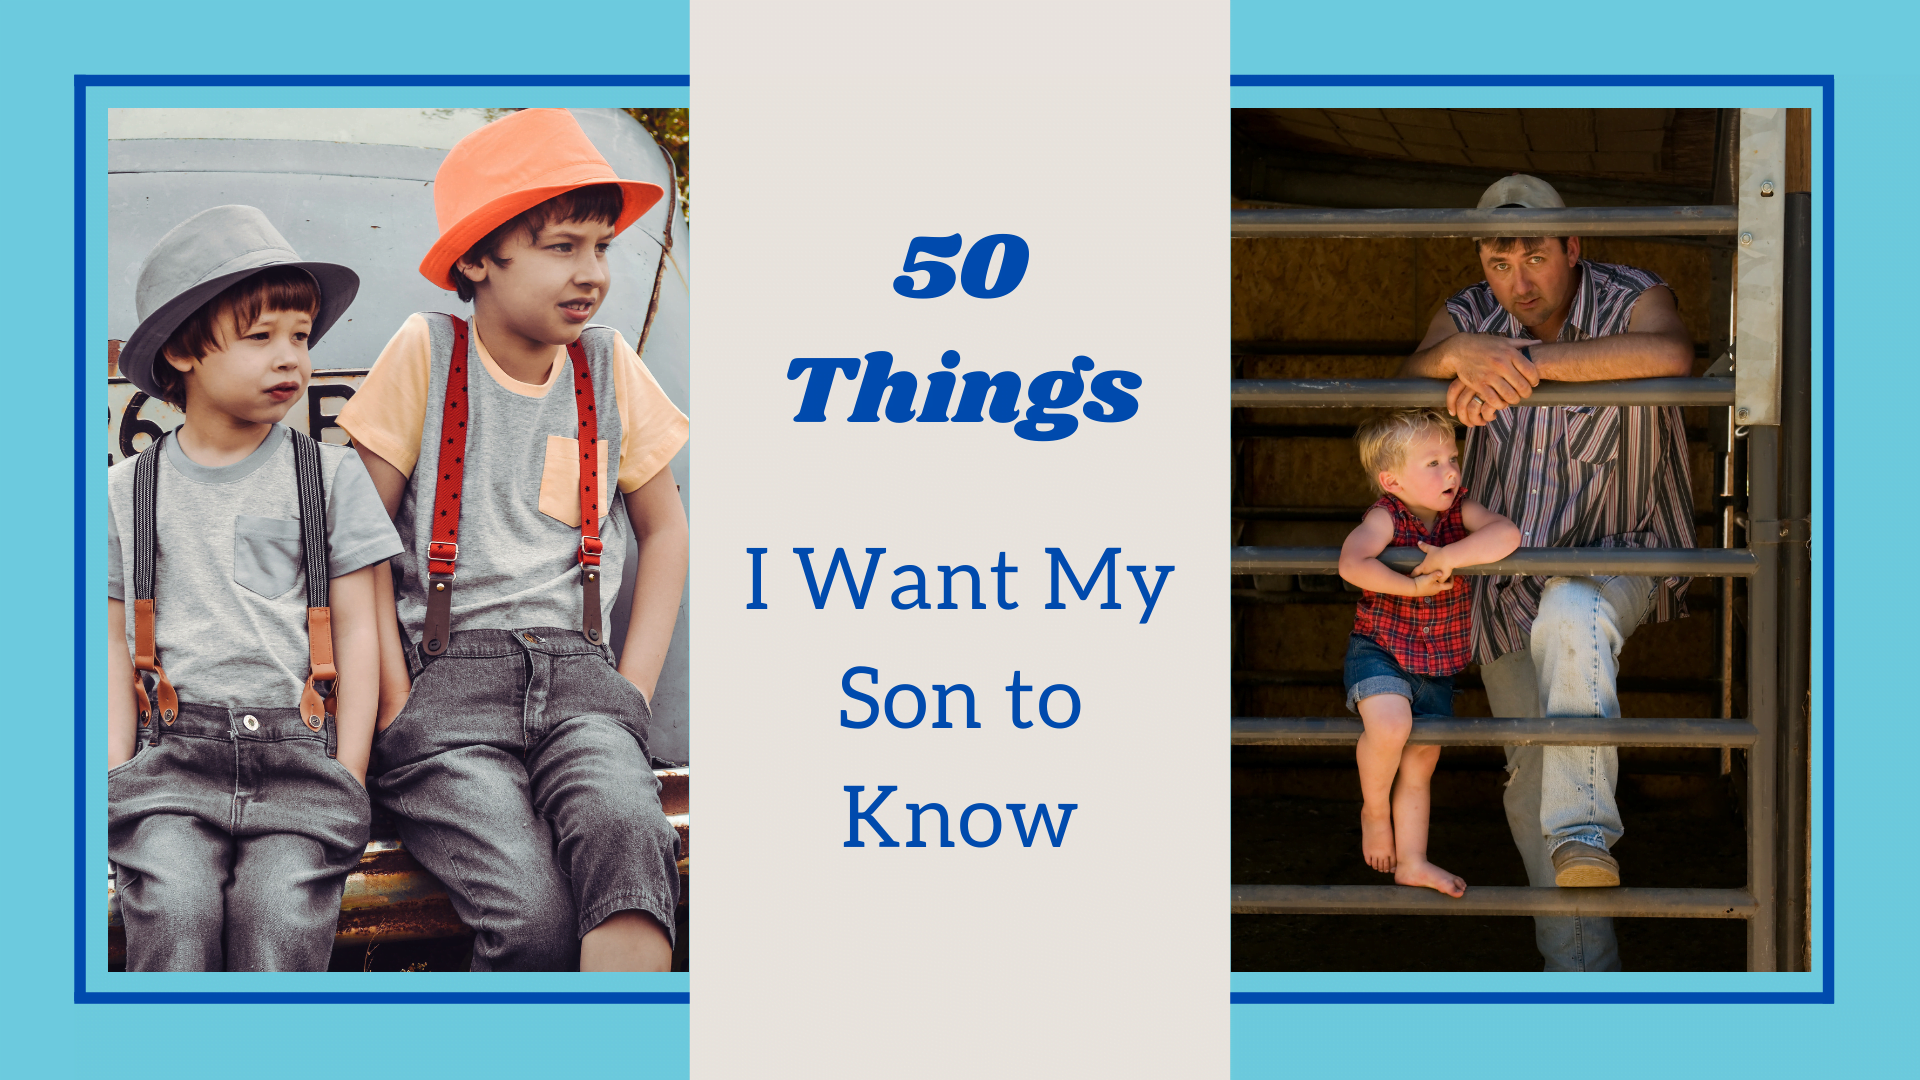 Video Channel 50 Things I Want My Son to Know